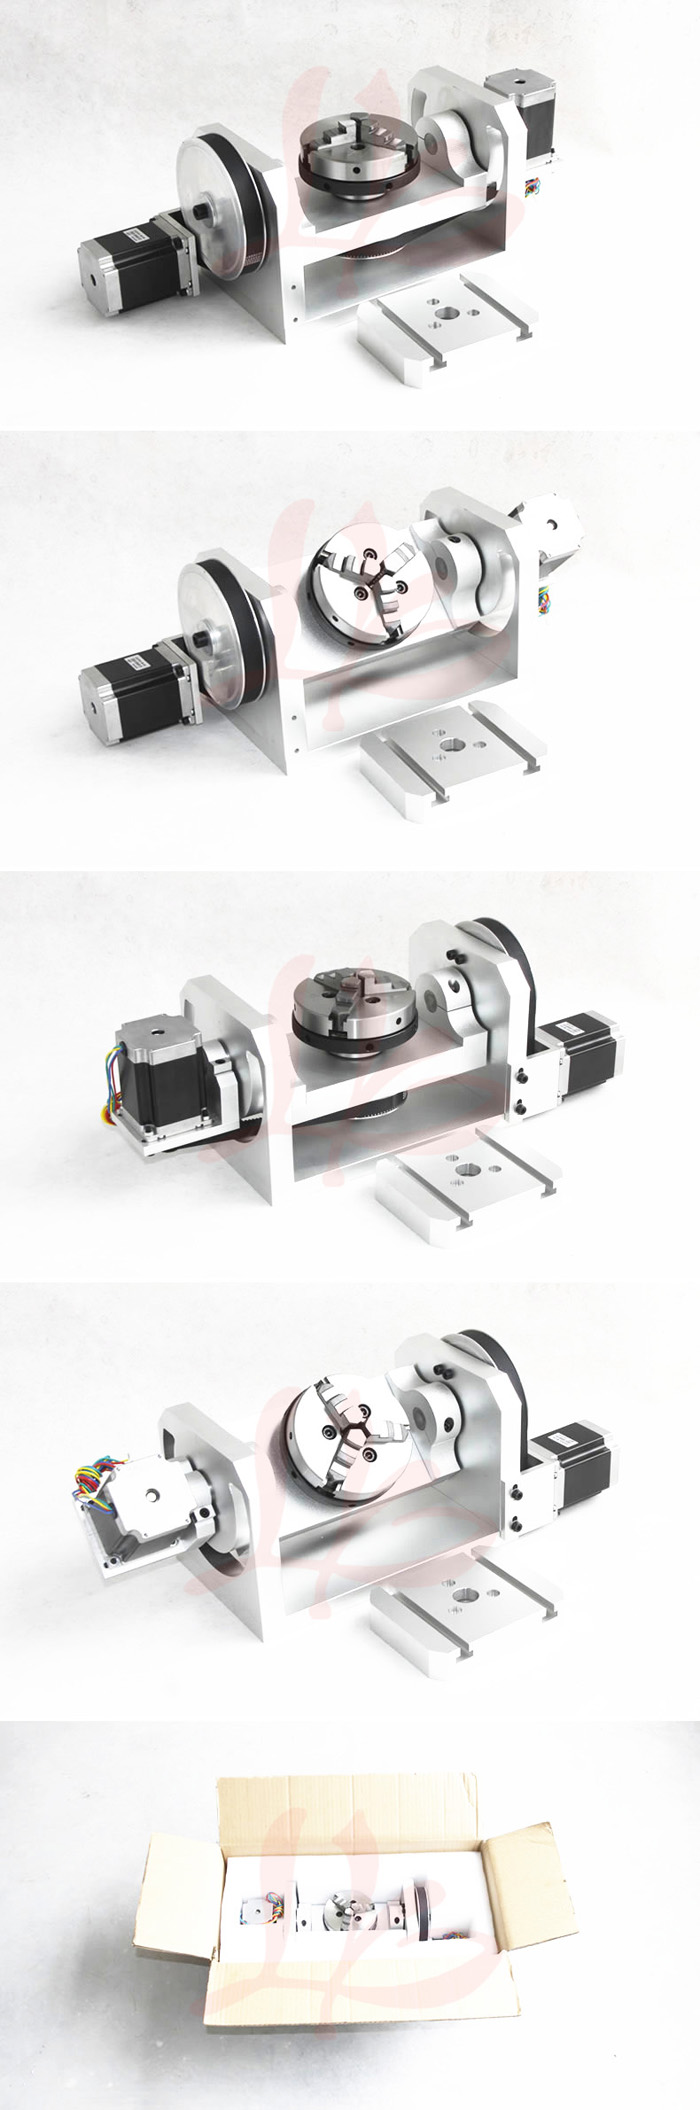 5th axis - T - C  (4)